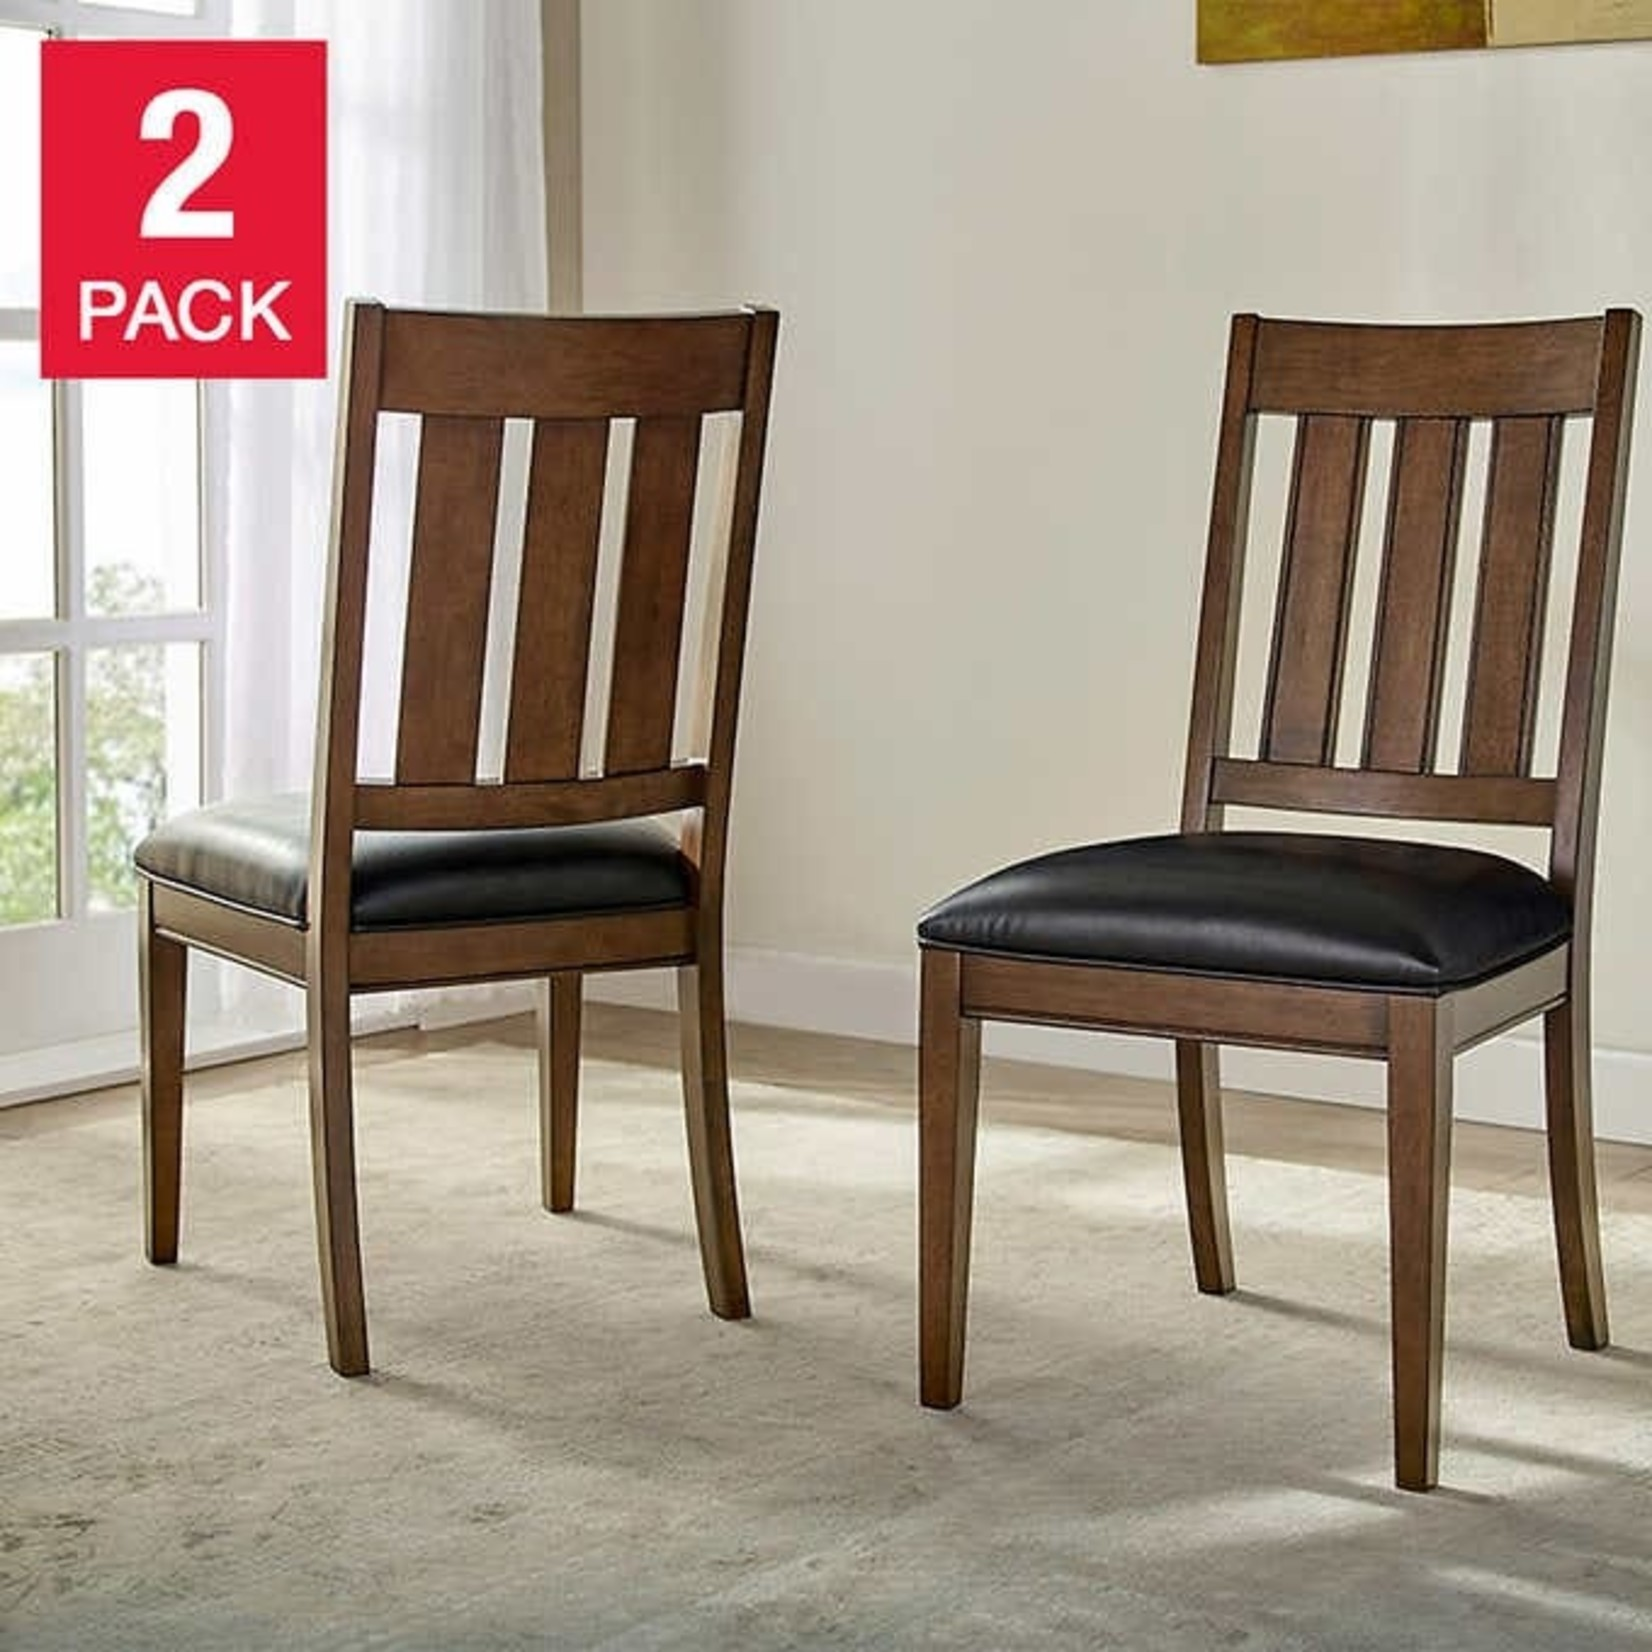 Neagan Dining Chair - 2 Pack